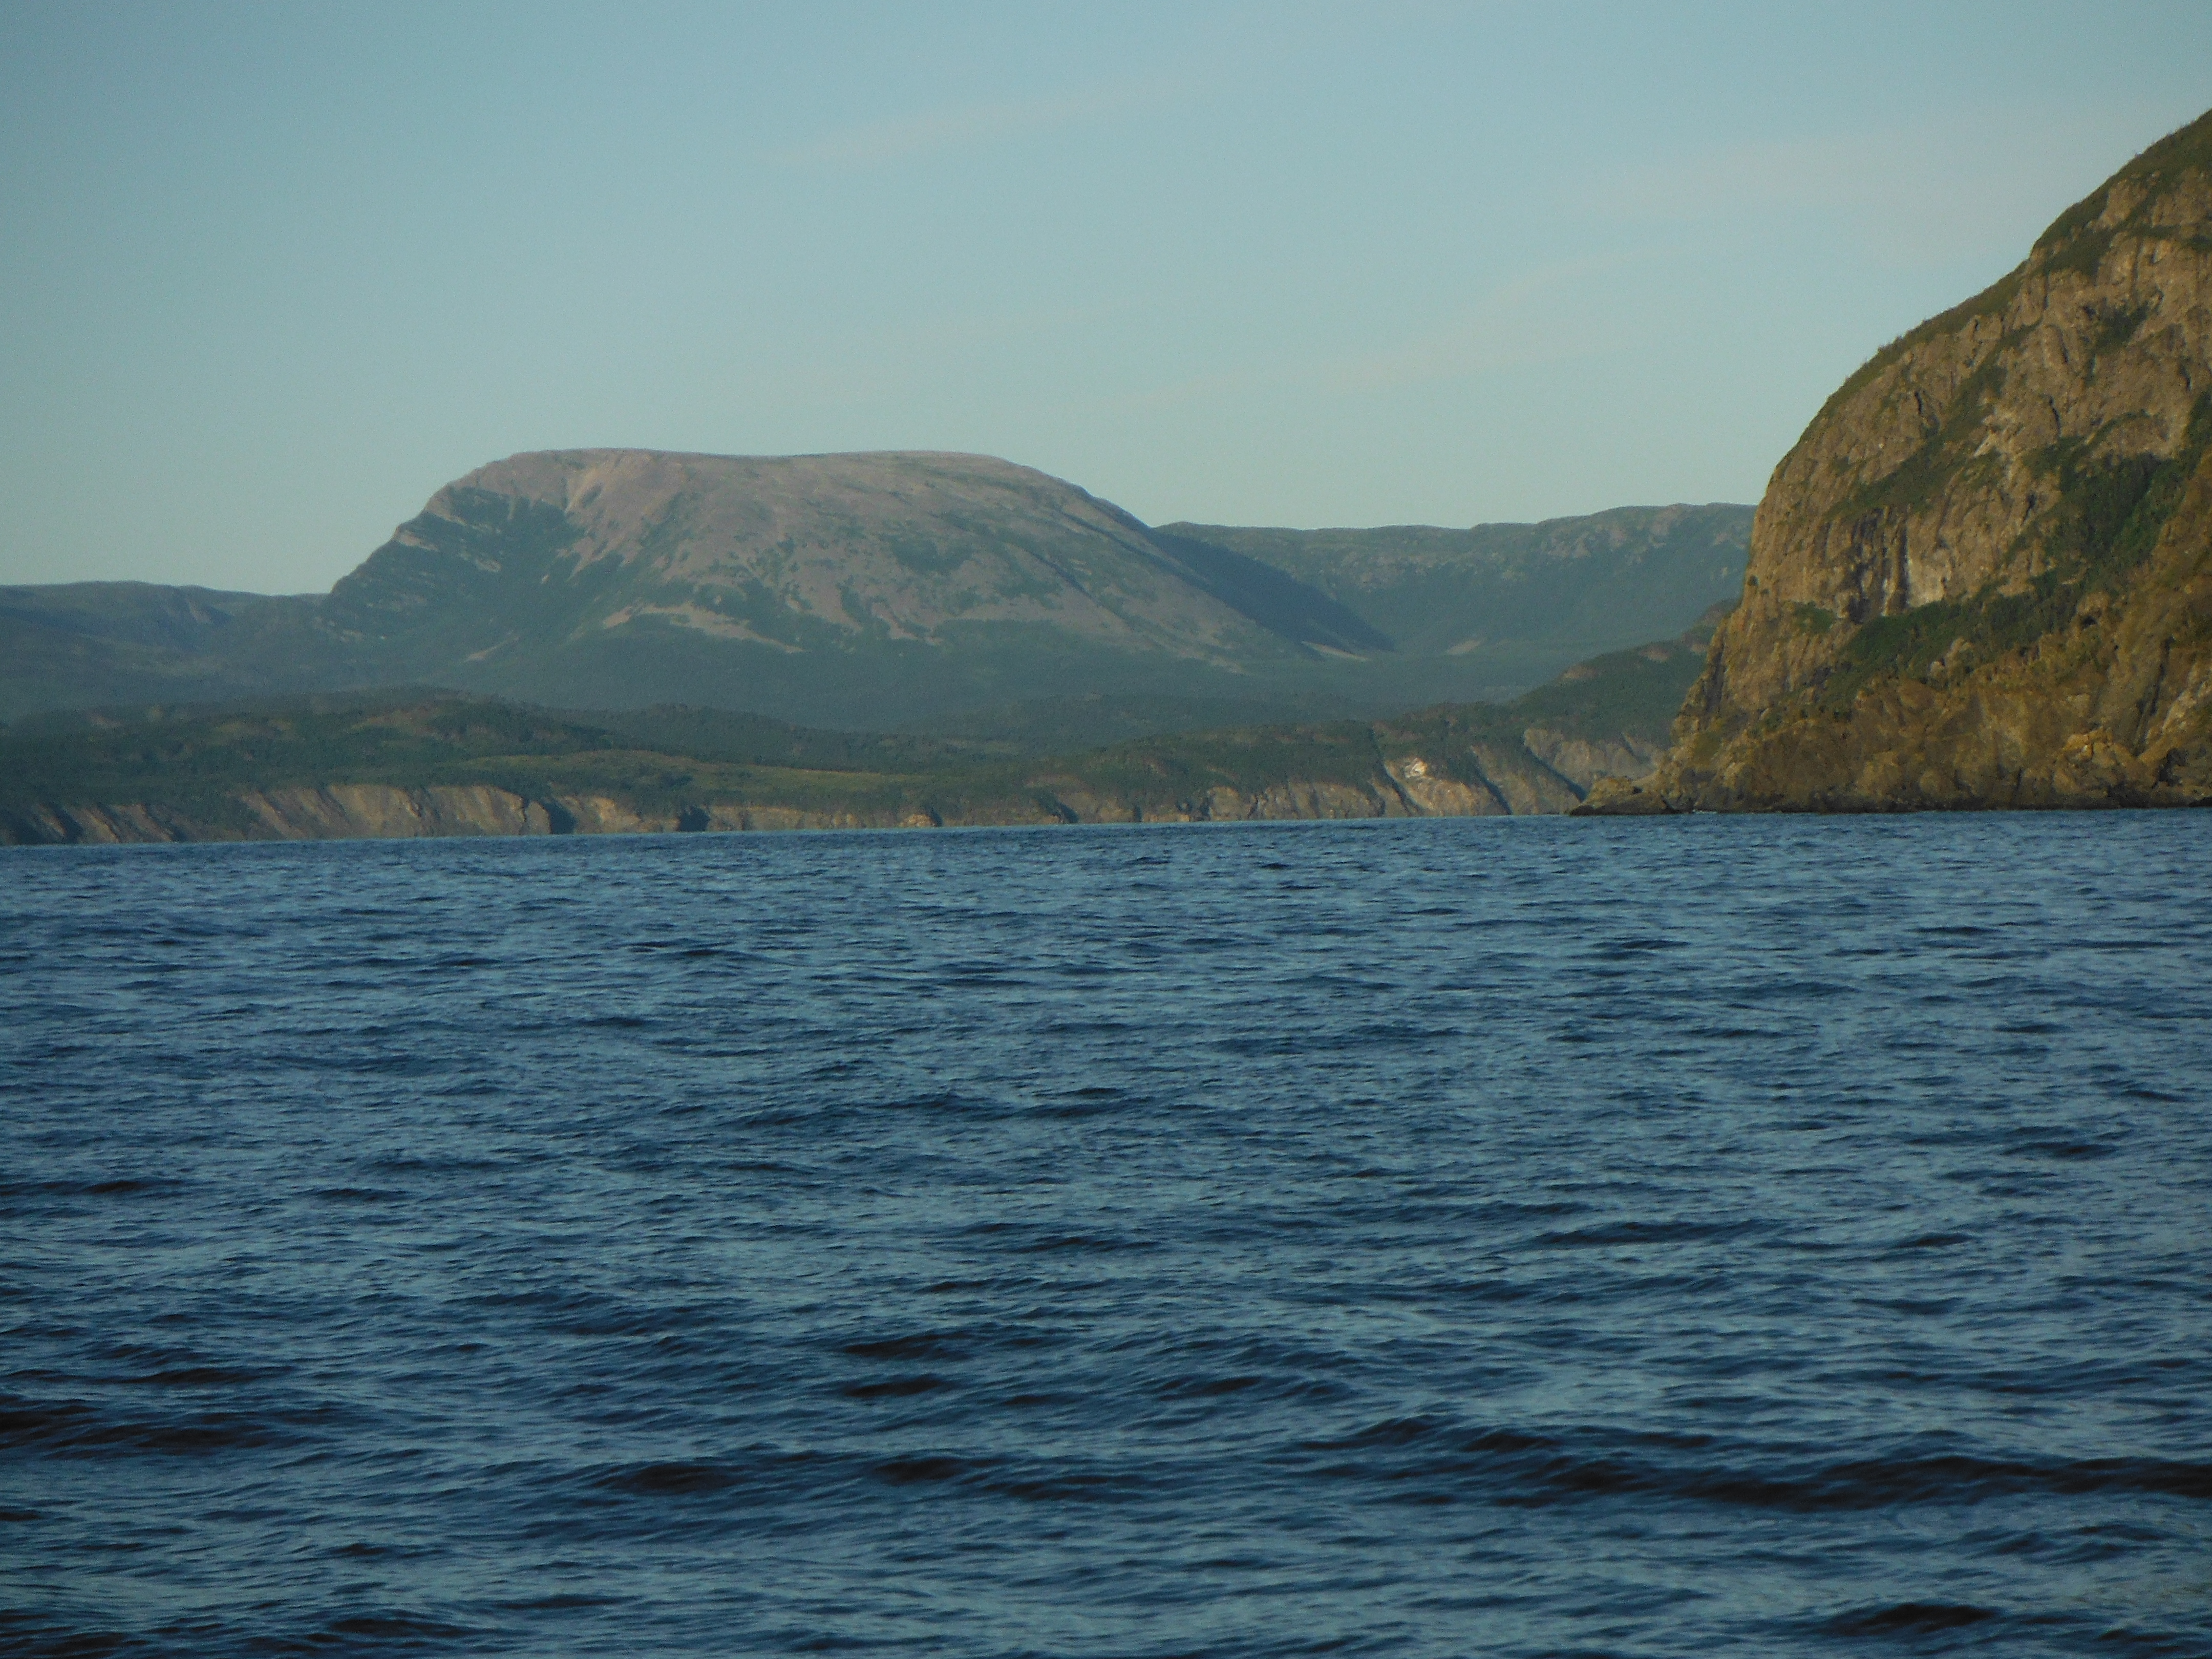 Photo: Gros Morne, the highest point in Newfoundland, from the Gulf of St. Lawrence.